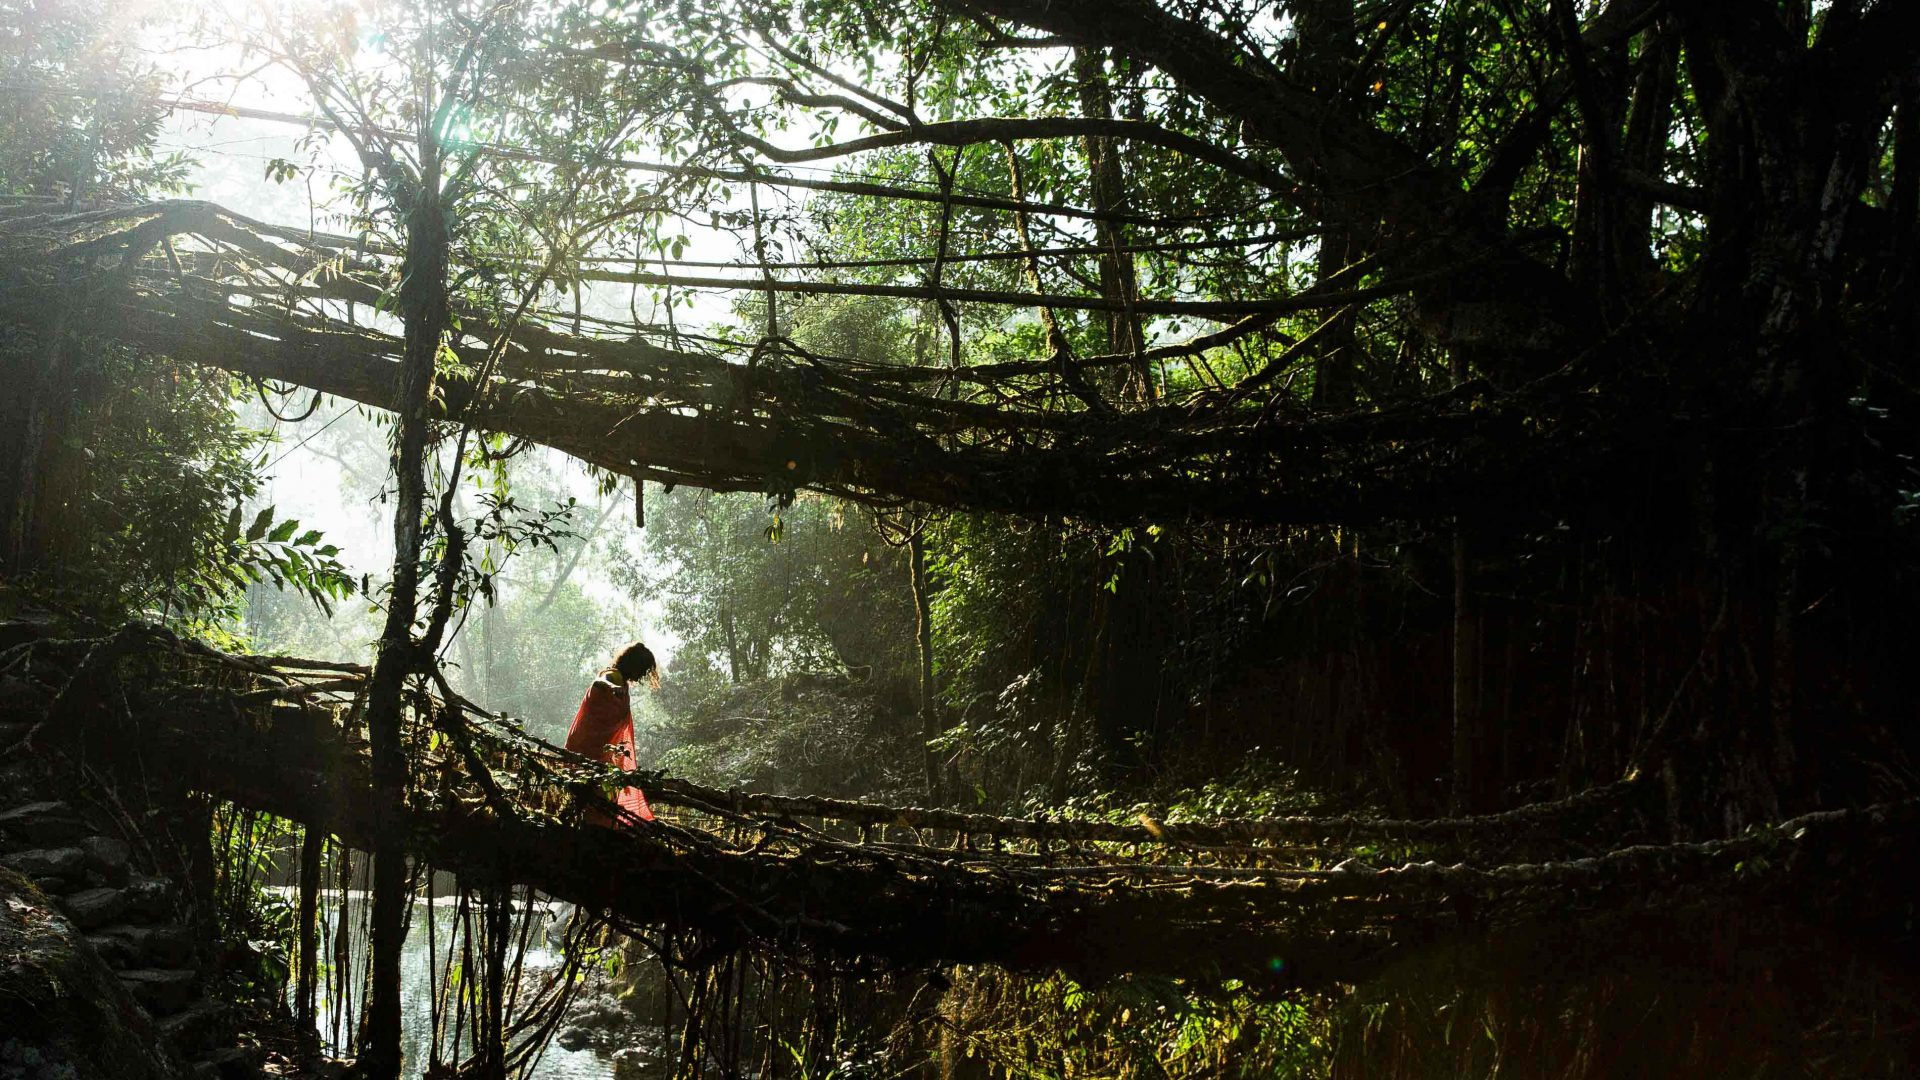 Nongriat's double-decker root bridge at sunrise in the East Khasi Hills, Meghalaya, India.